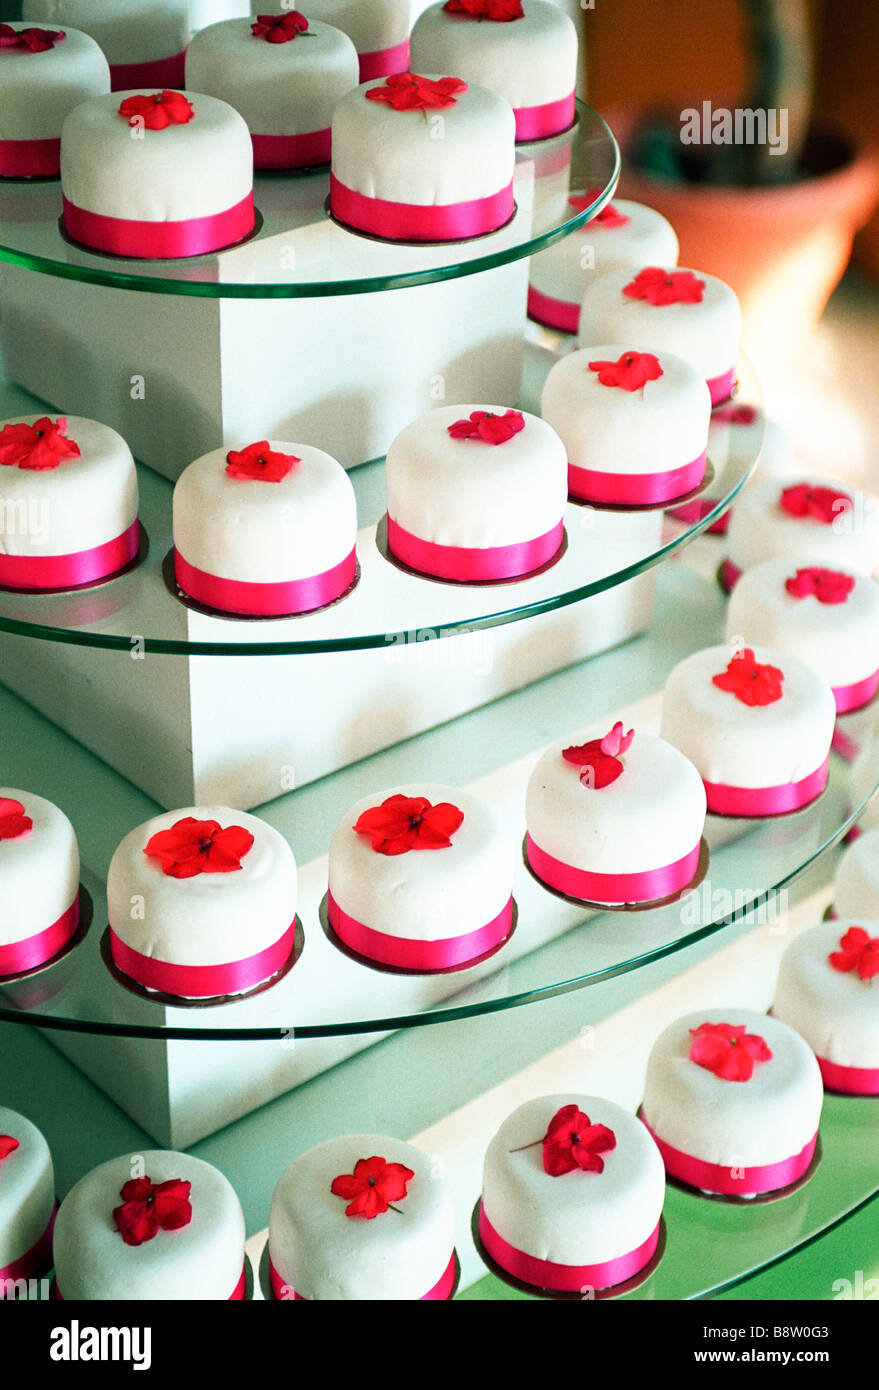 Colourful Cupcakes on a tiered platter - Stock Image